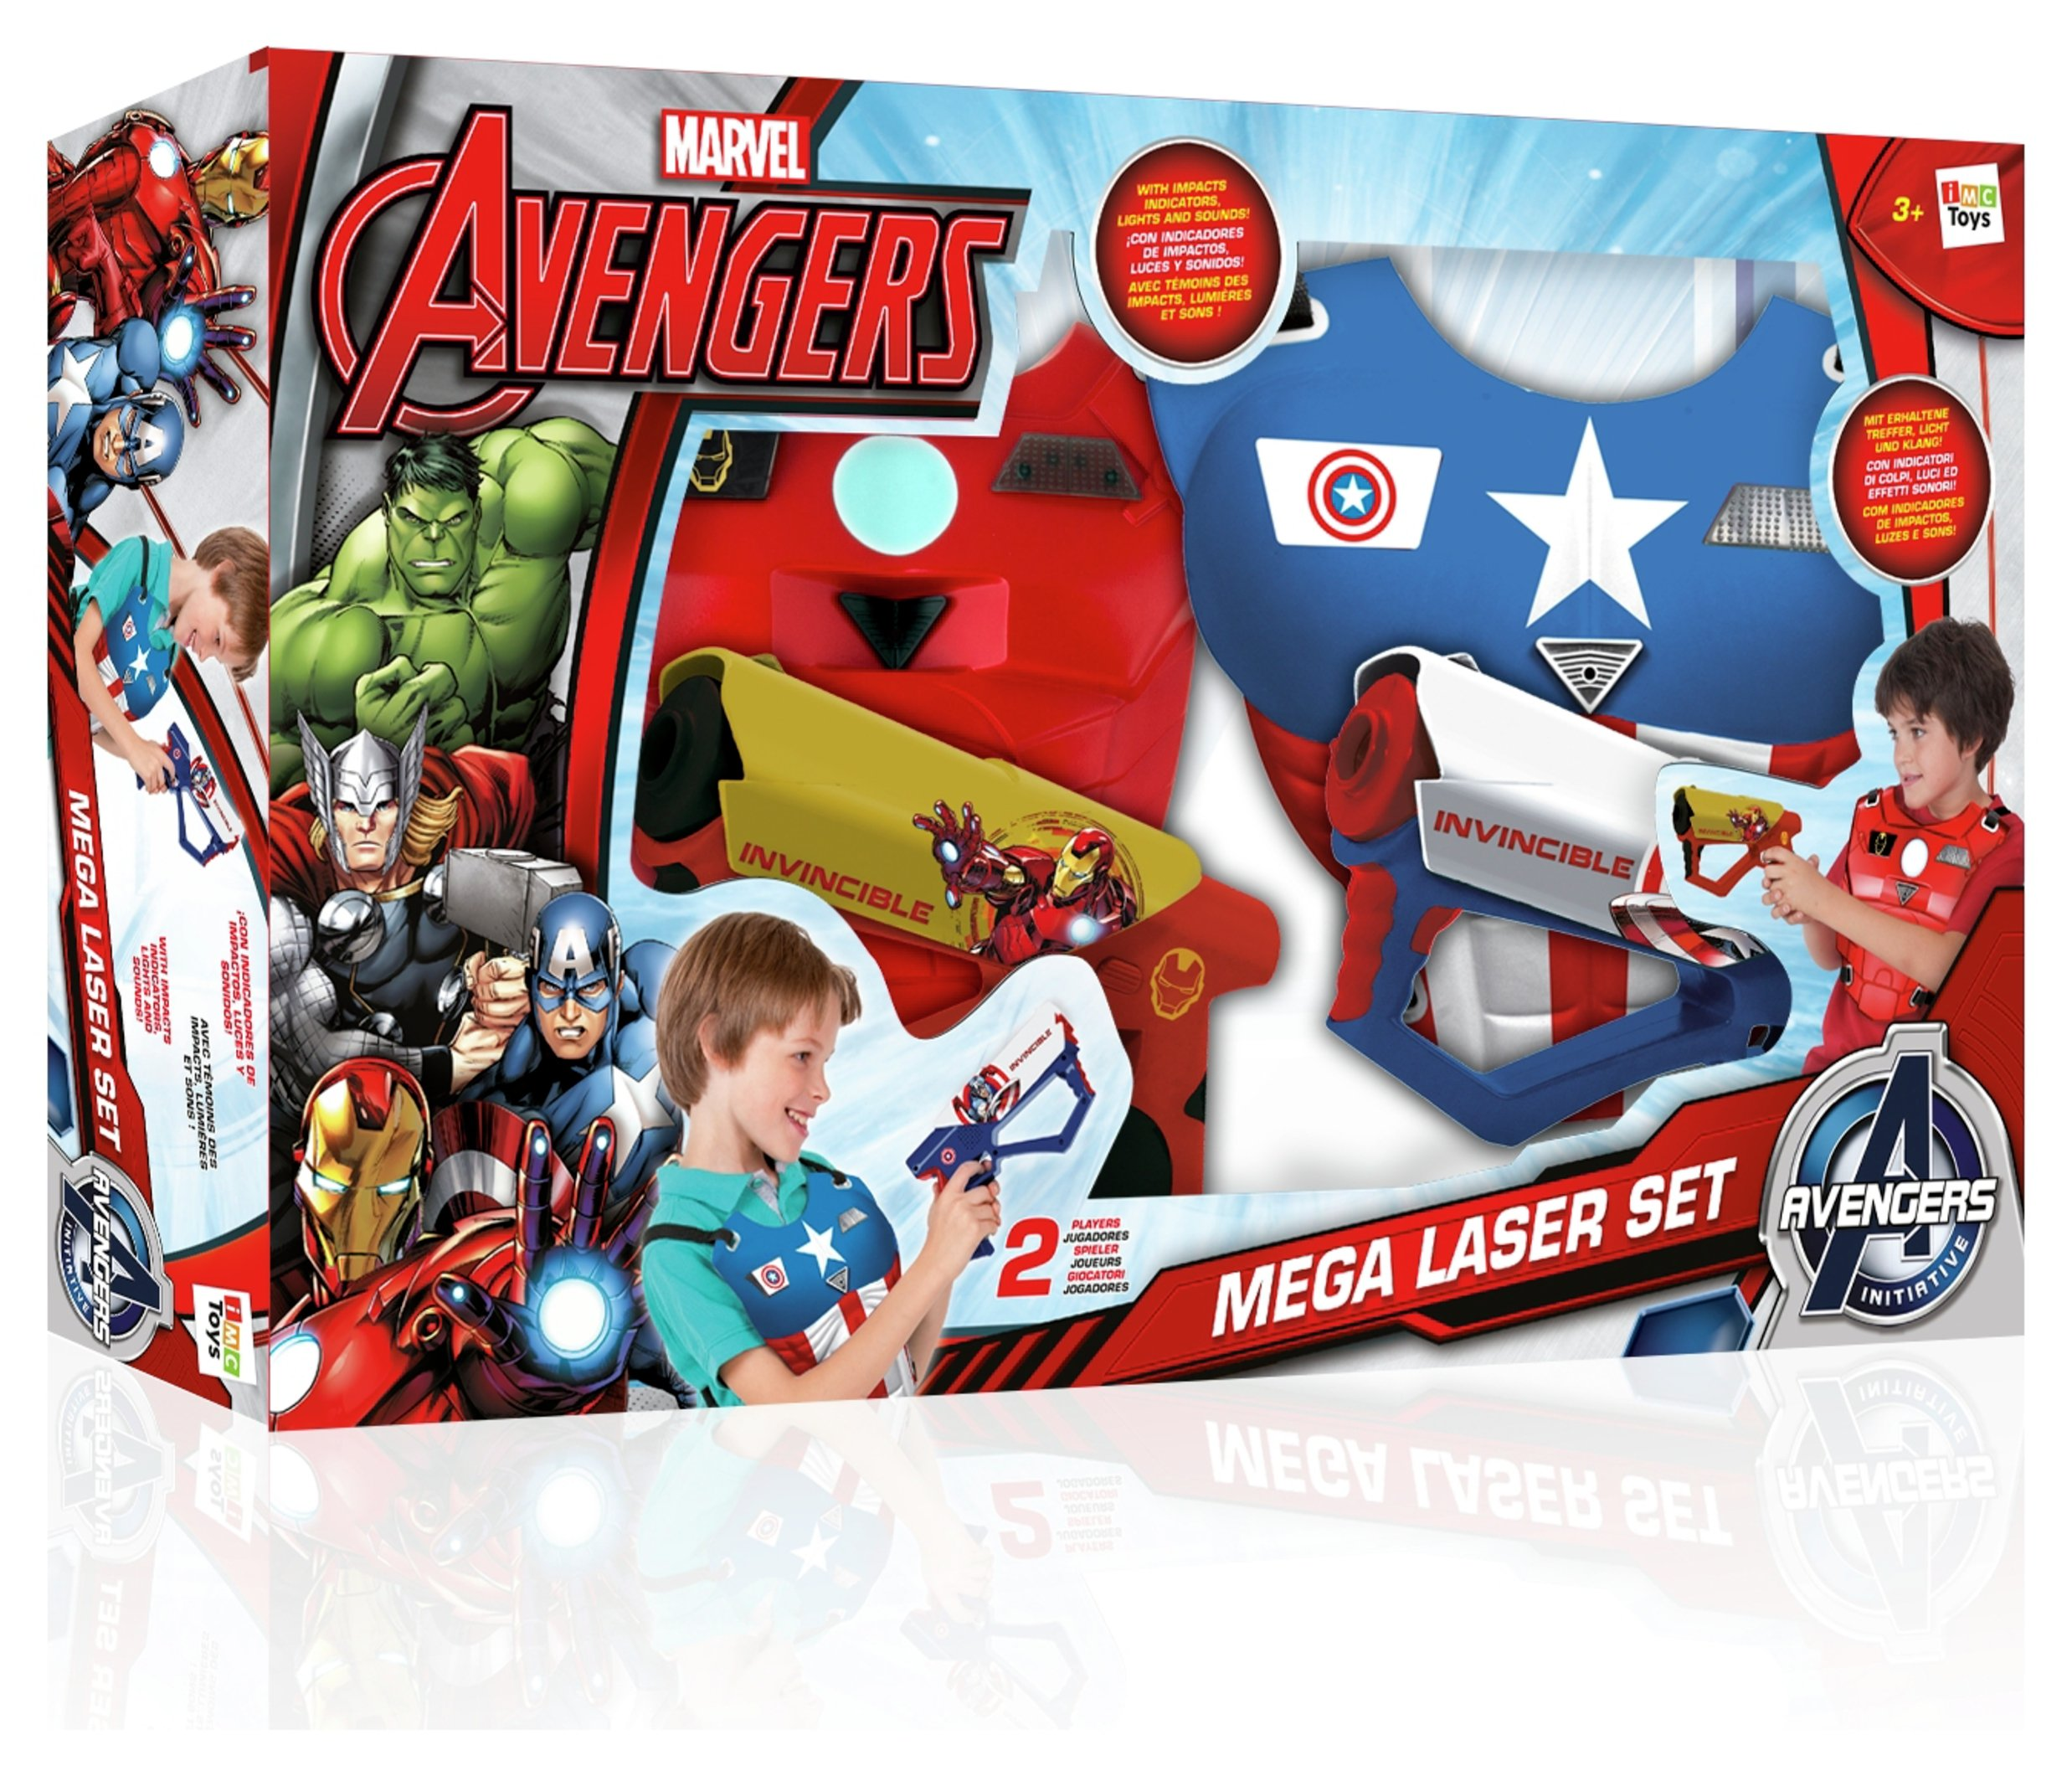 Image of Avengers Mega Laser Set.